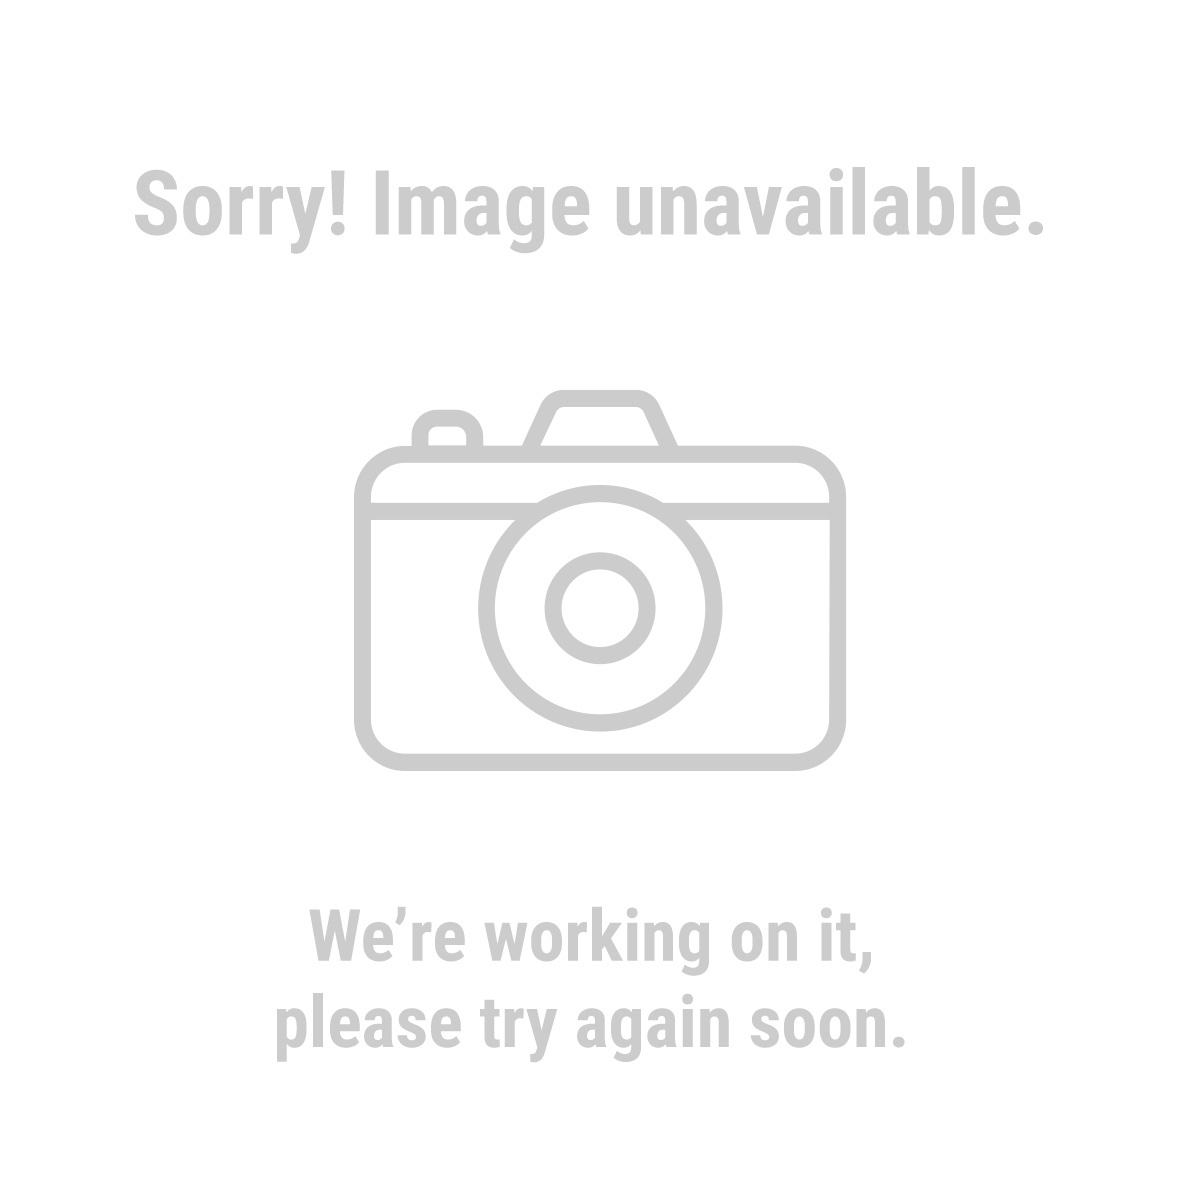 Western Safety 43768 Industrial Ear Muffs